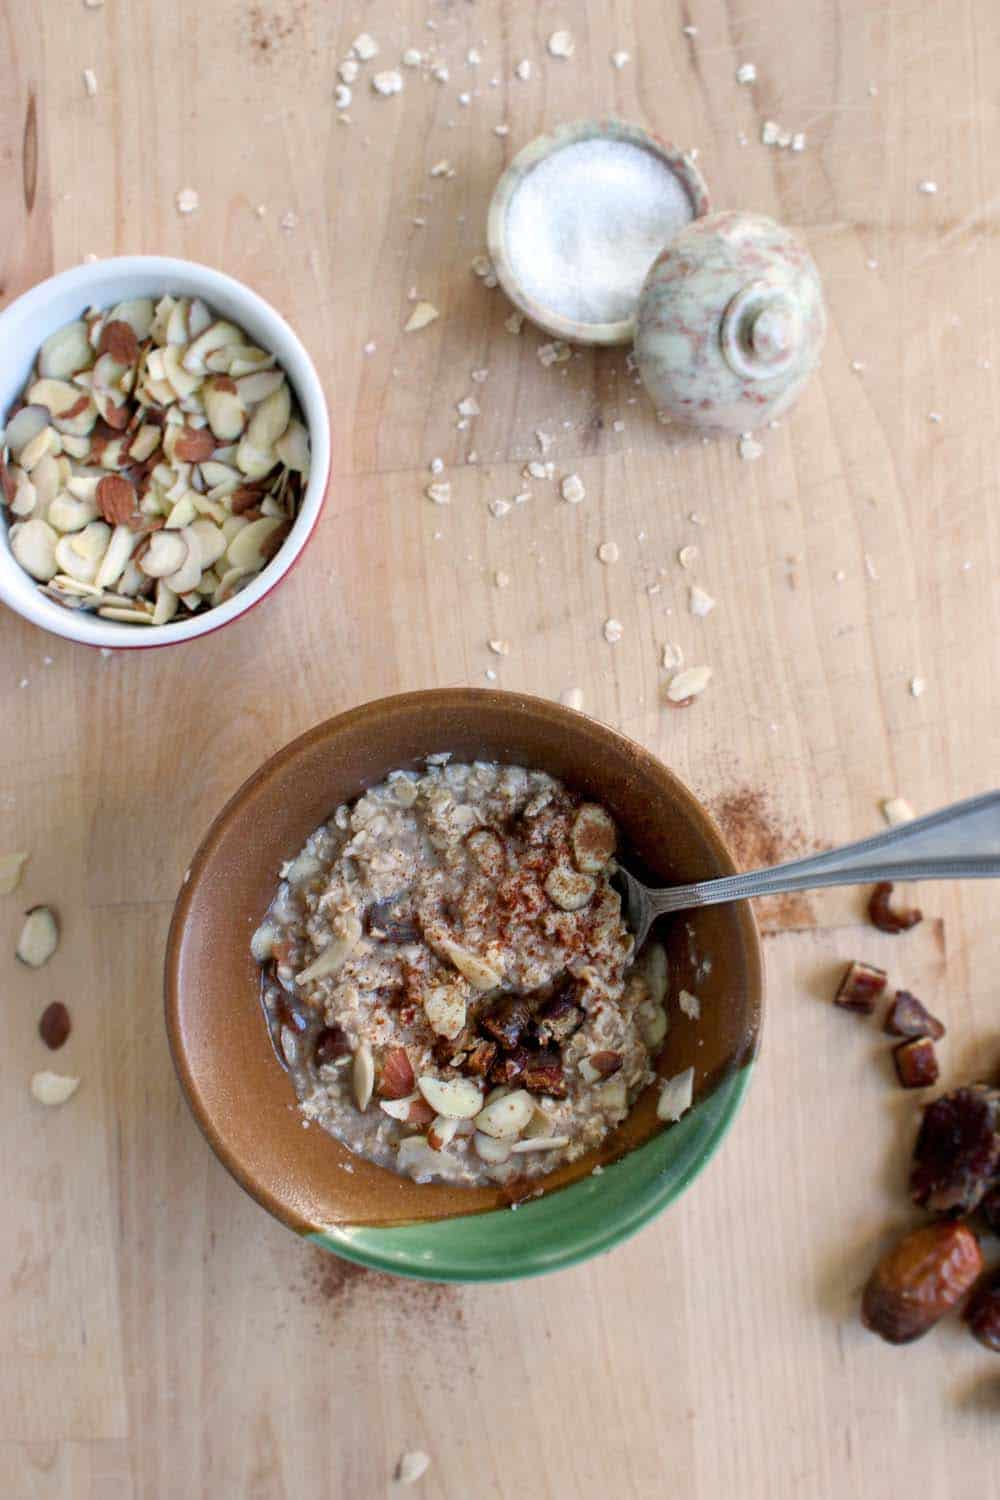 Bird's eye view of a brown ceramic bowl of oatmeal with a spoon sticking out, and ingredients like slivered almonds and white sugar scattered around.